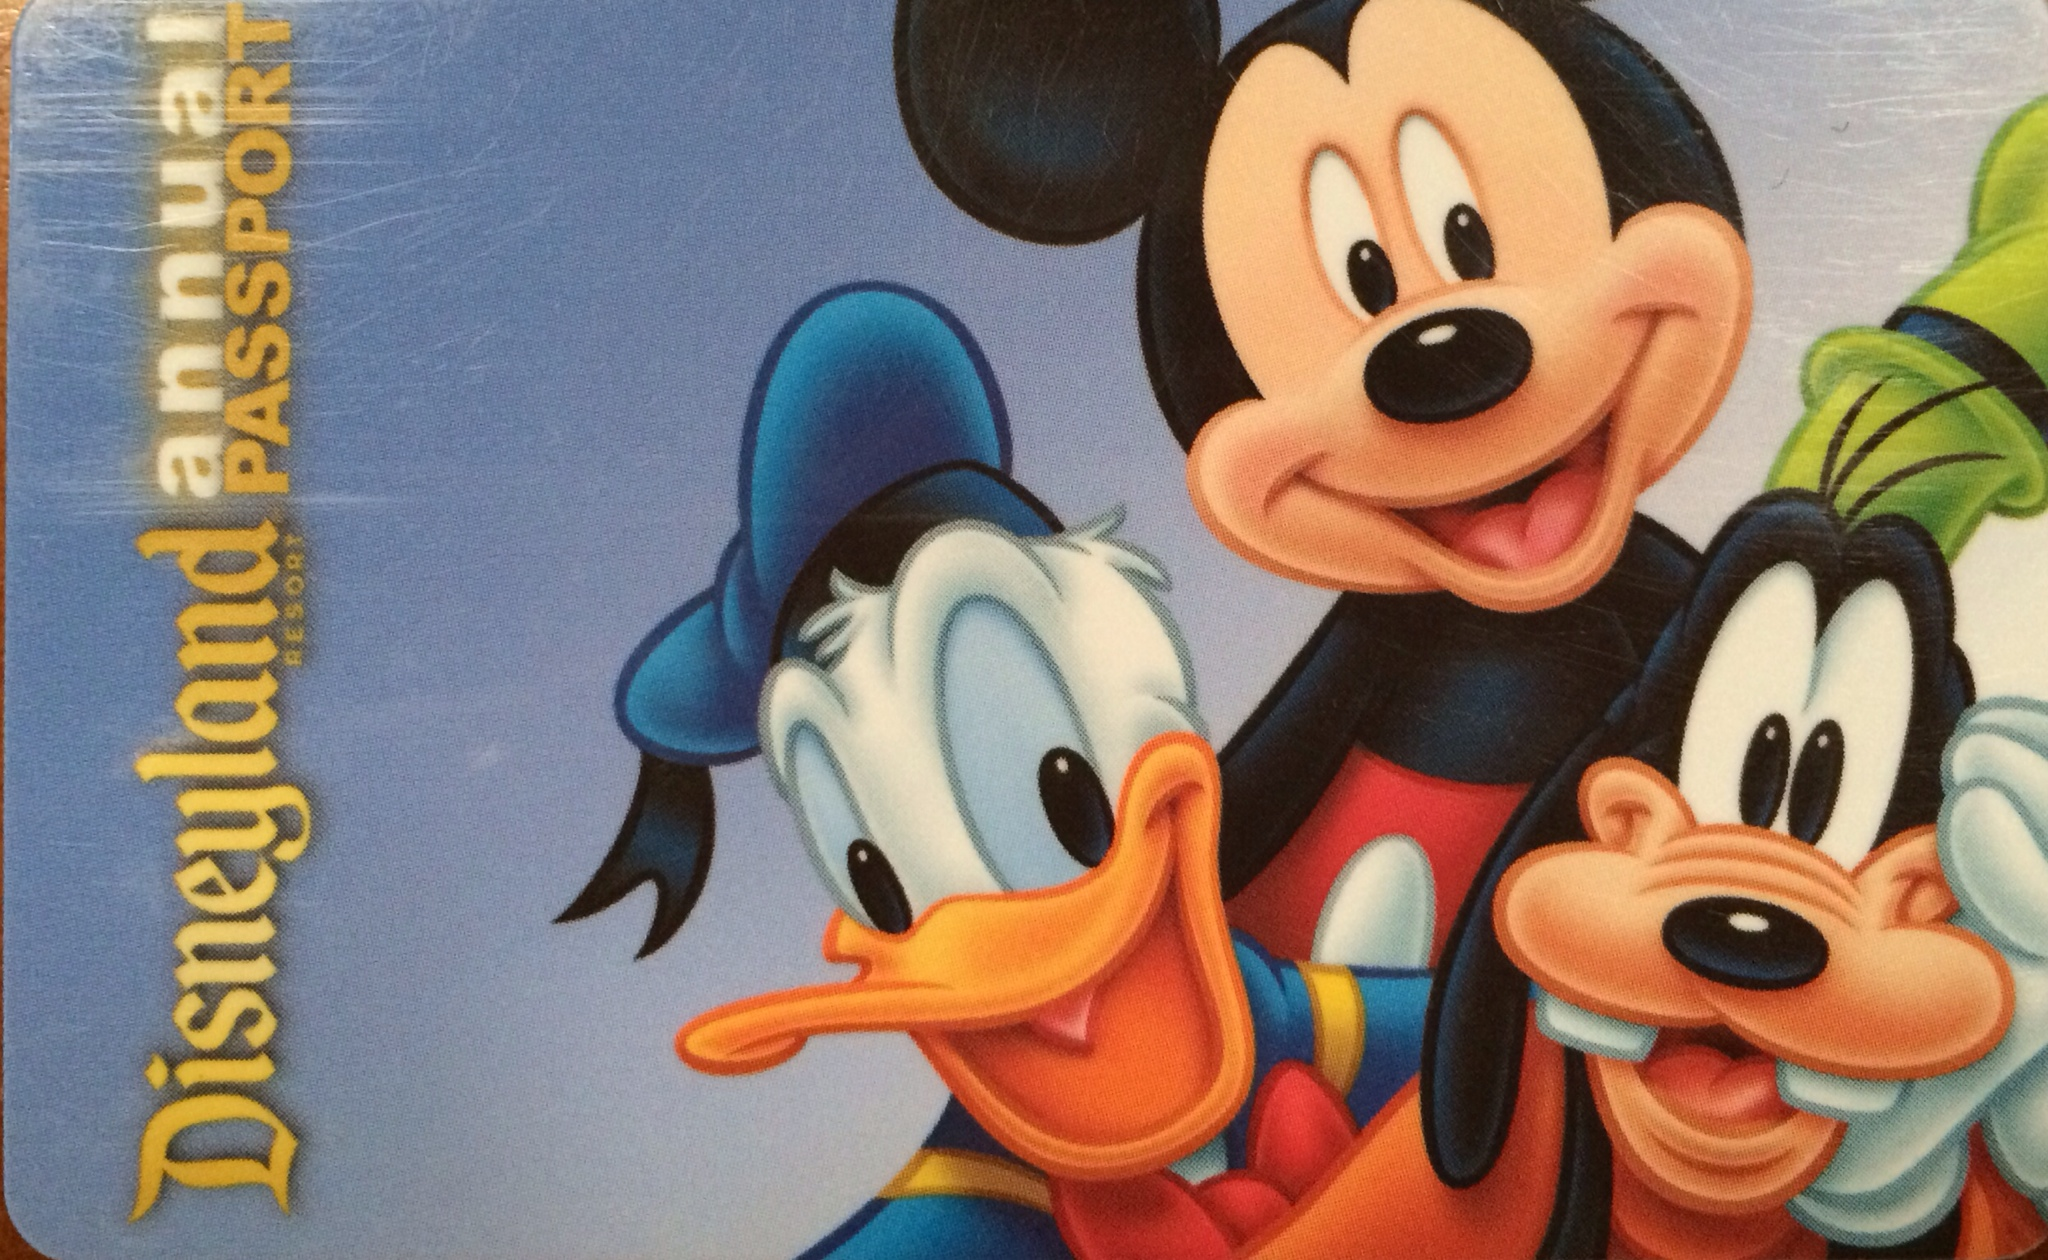 Disneyland annual pass discounts extended through 2014